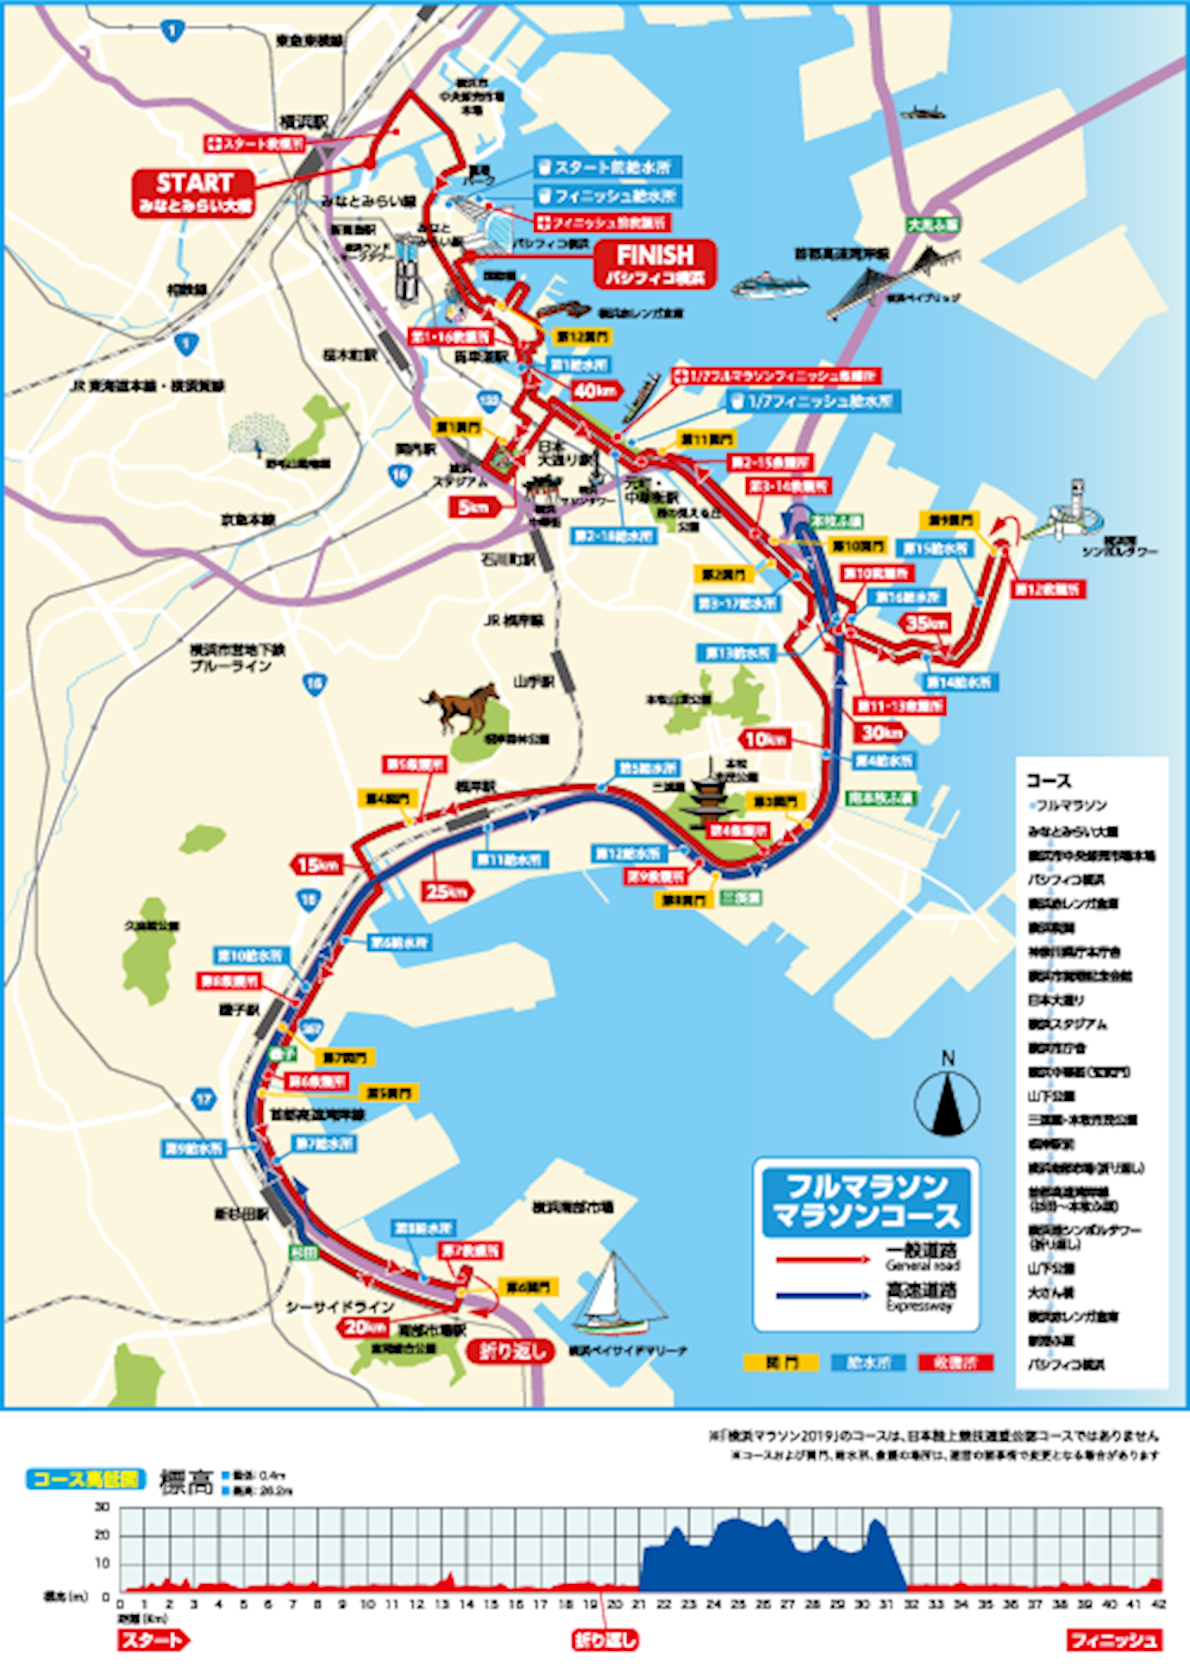 Yokohama Marathon Route Map